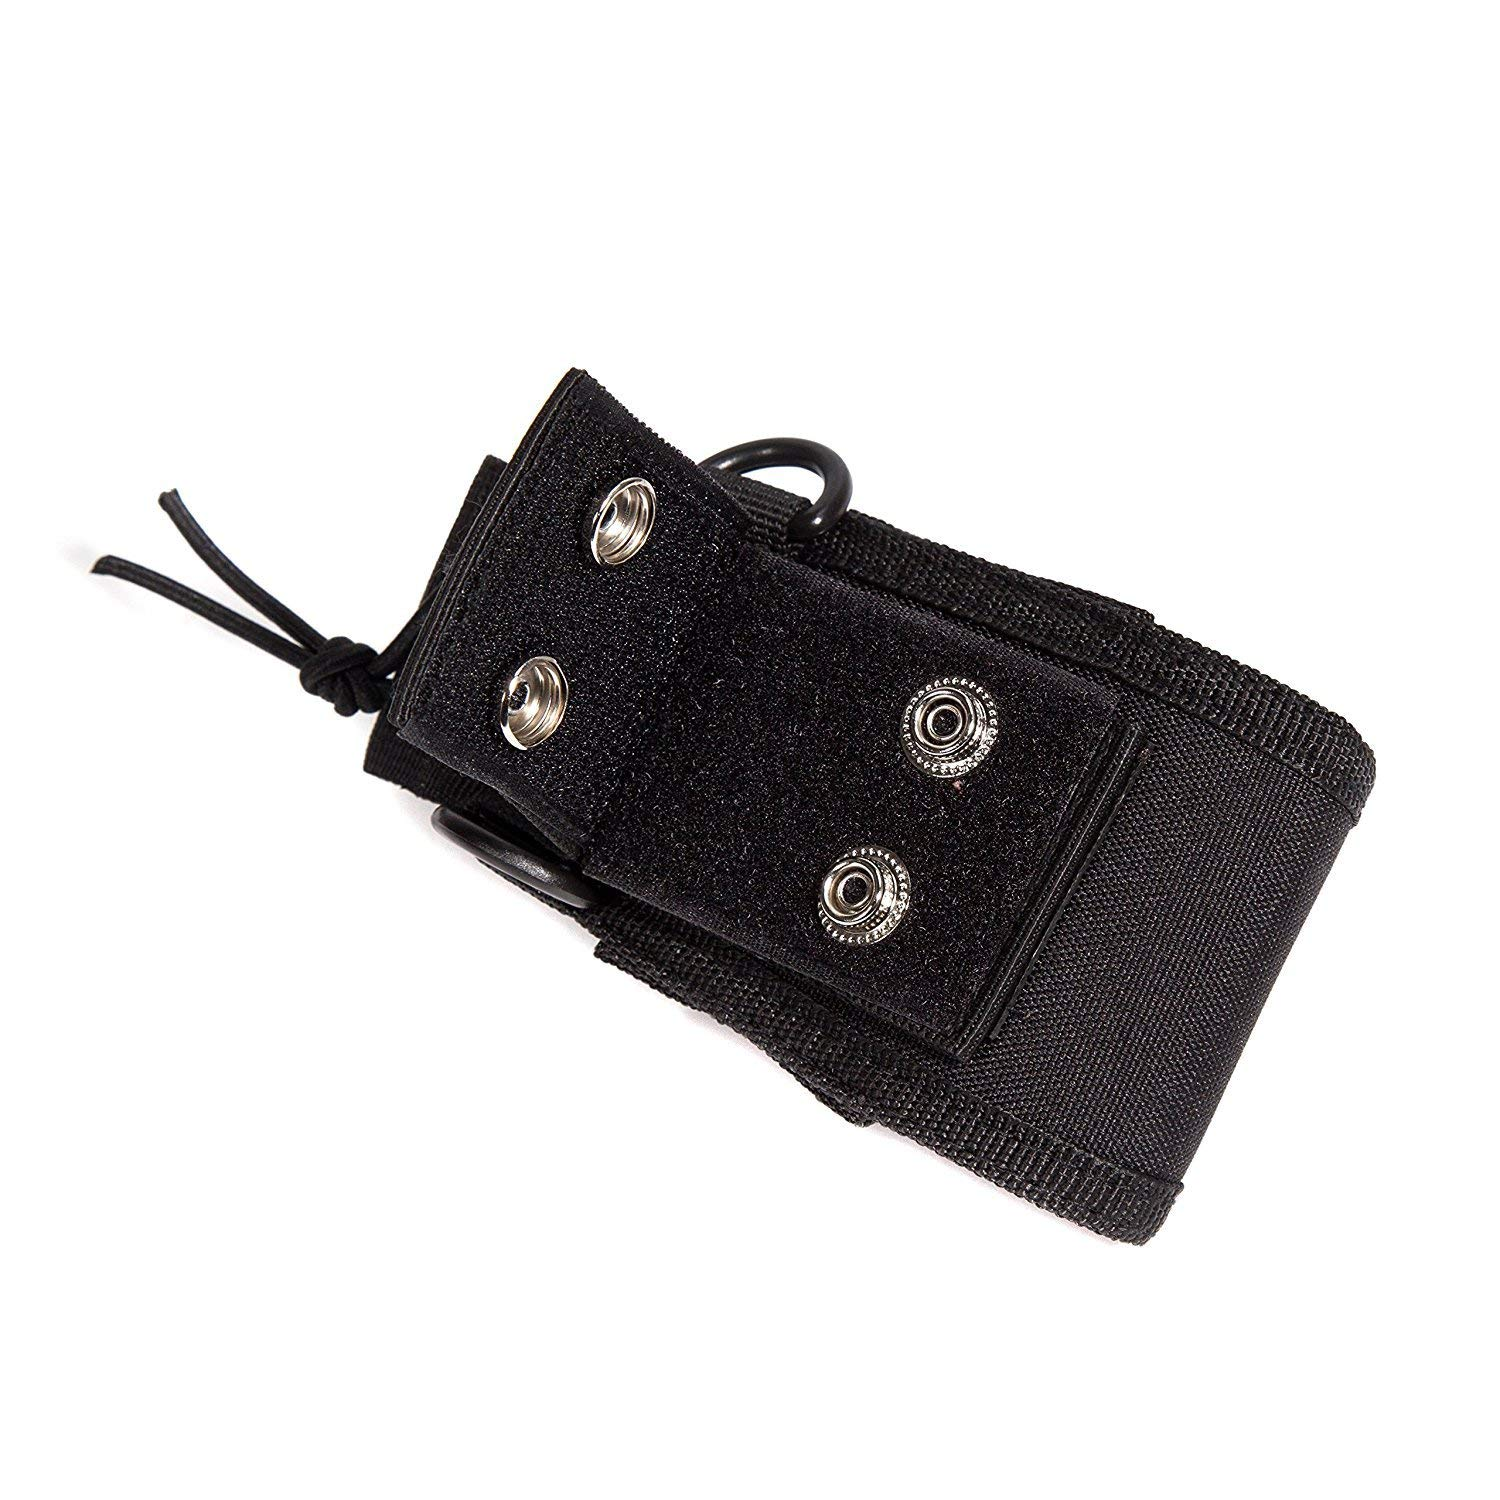 Universal de Multi-Função walkie talkie Transporte/Cinto/Neck Pouch Case Bag for Two Way Radio Transceiver